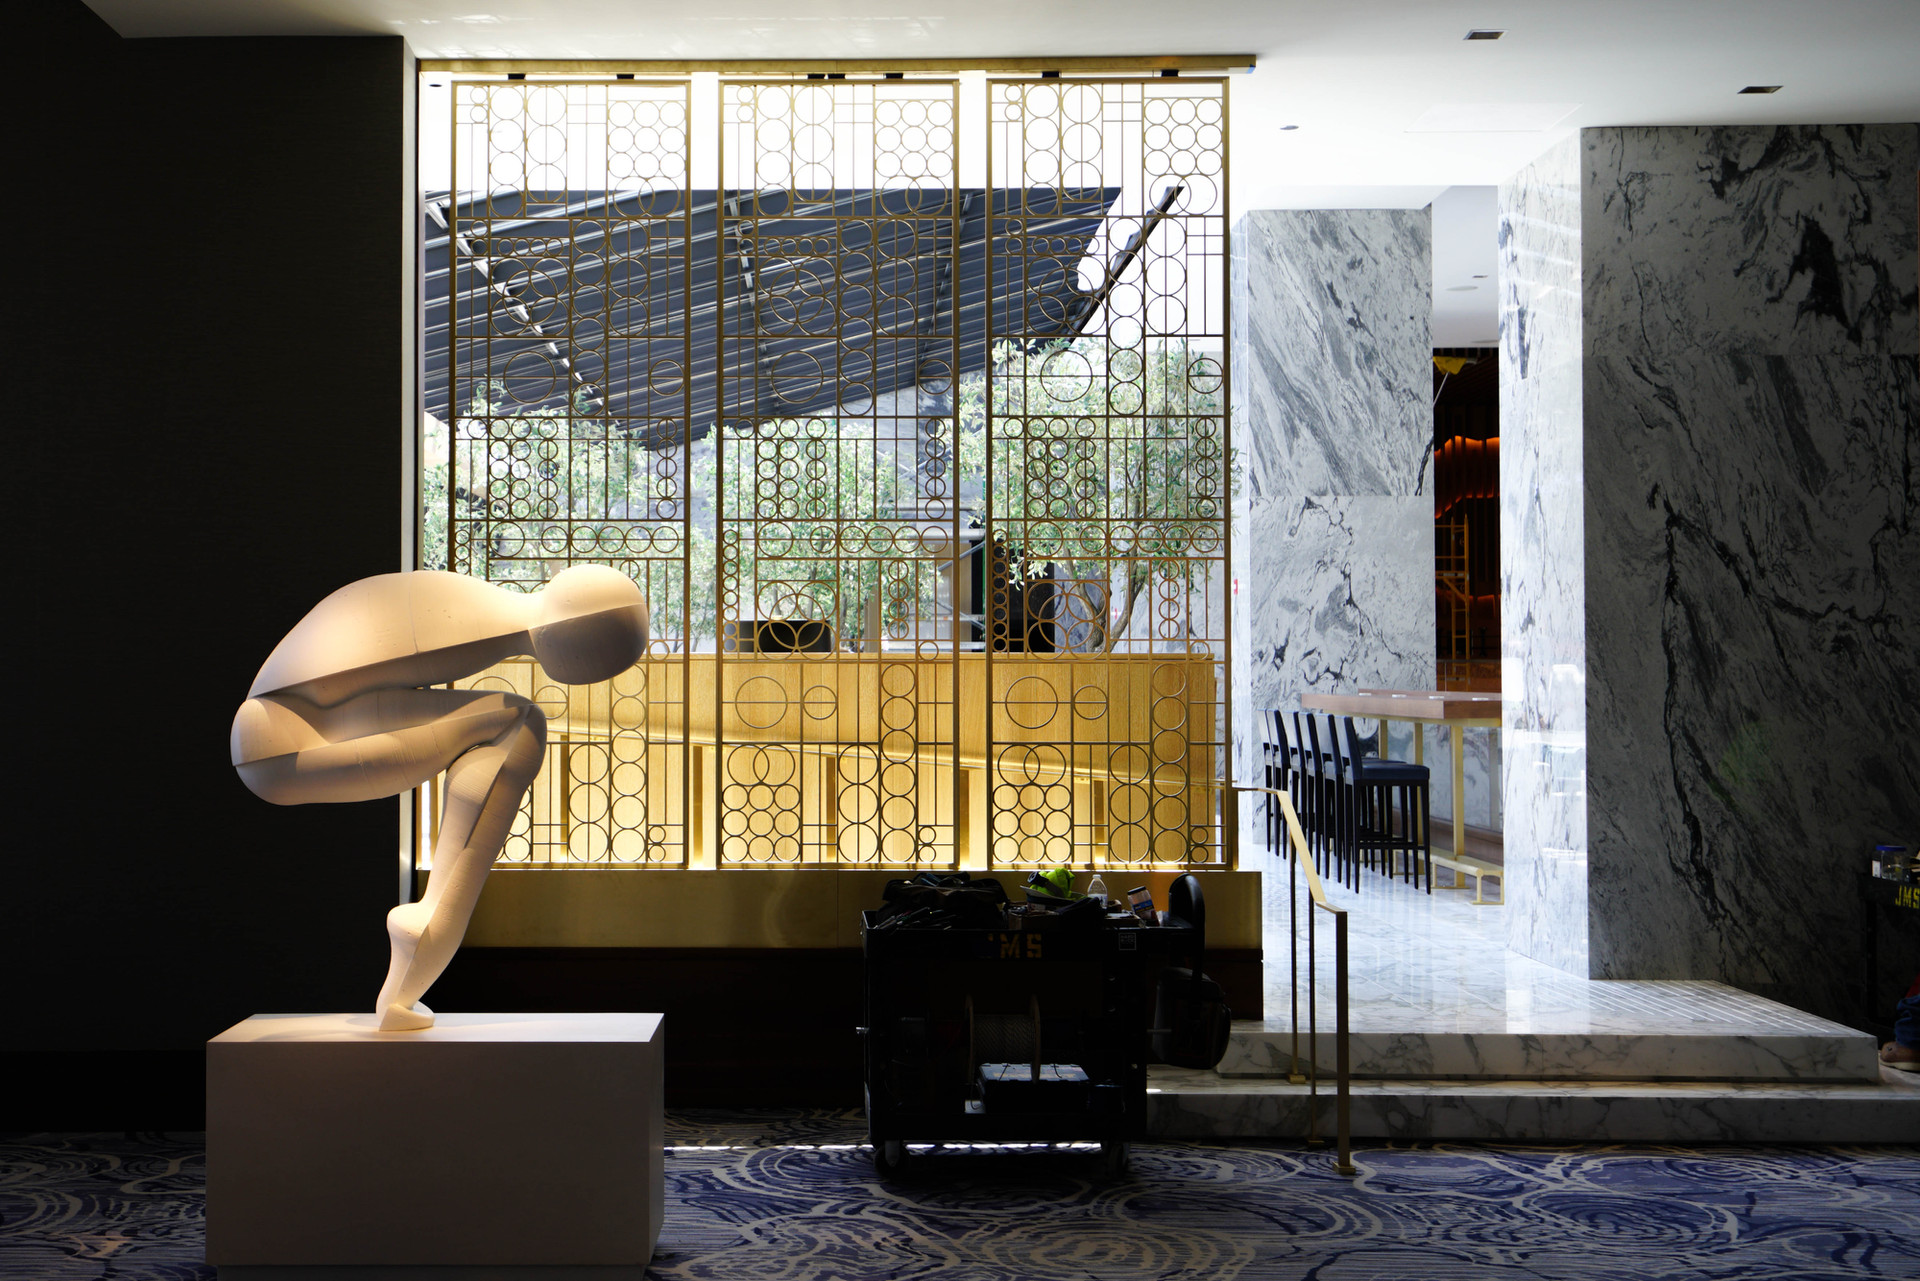 Ritz Carlton, Water Tower Place, Chicago